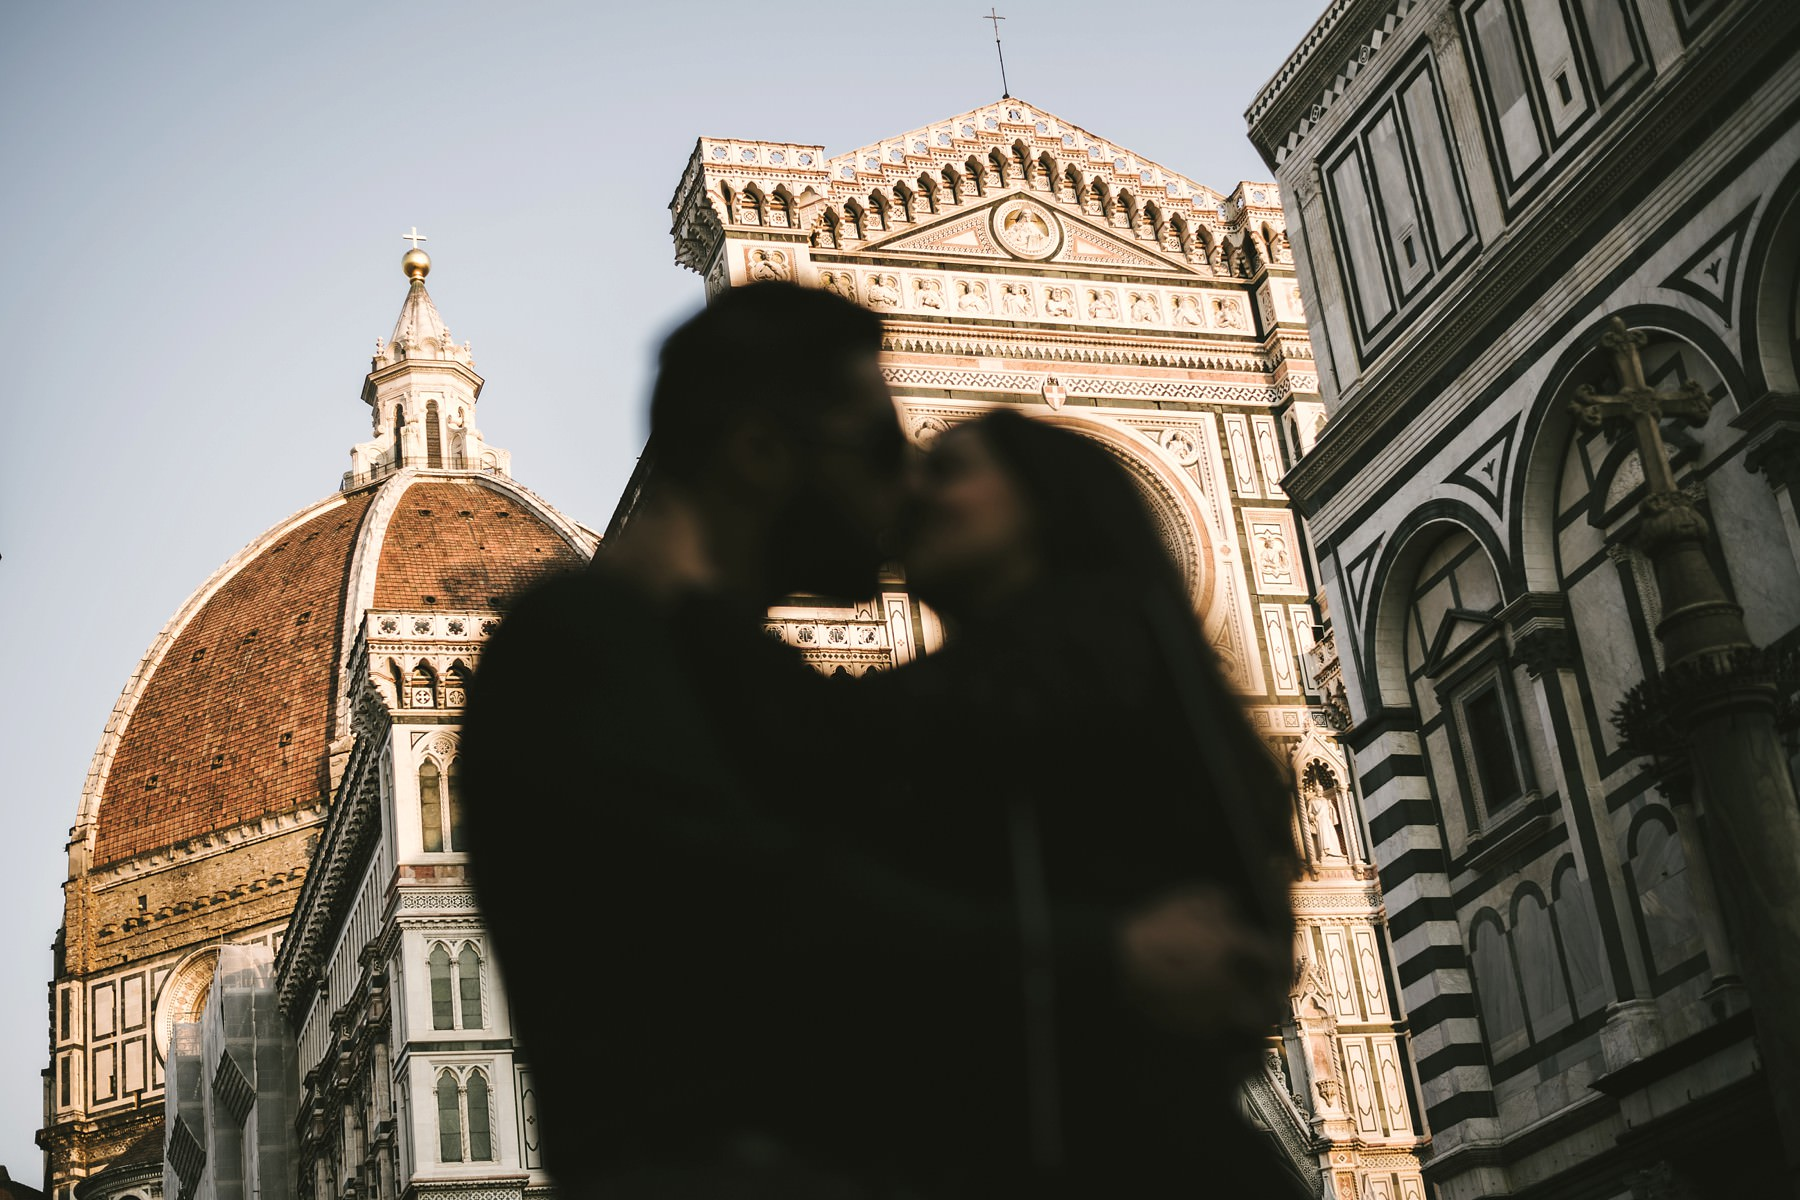 Vacation photographer couple portrait photo shoot in Florence